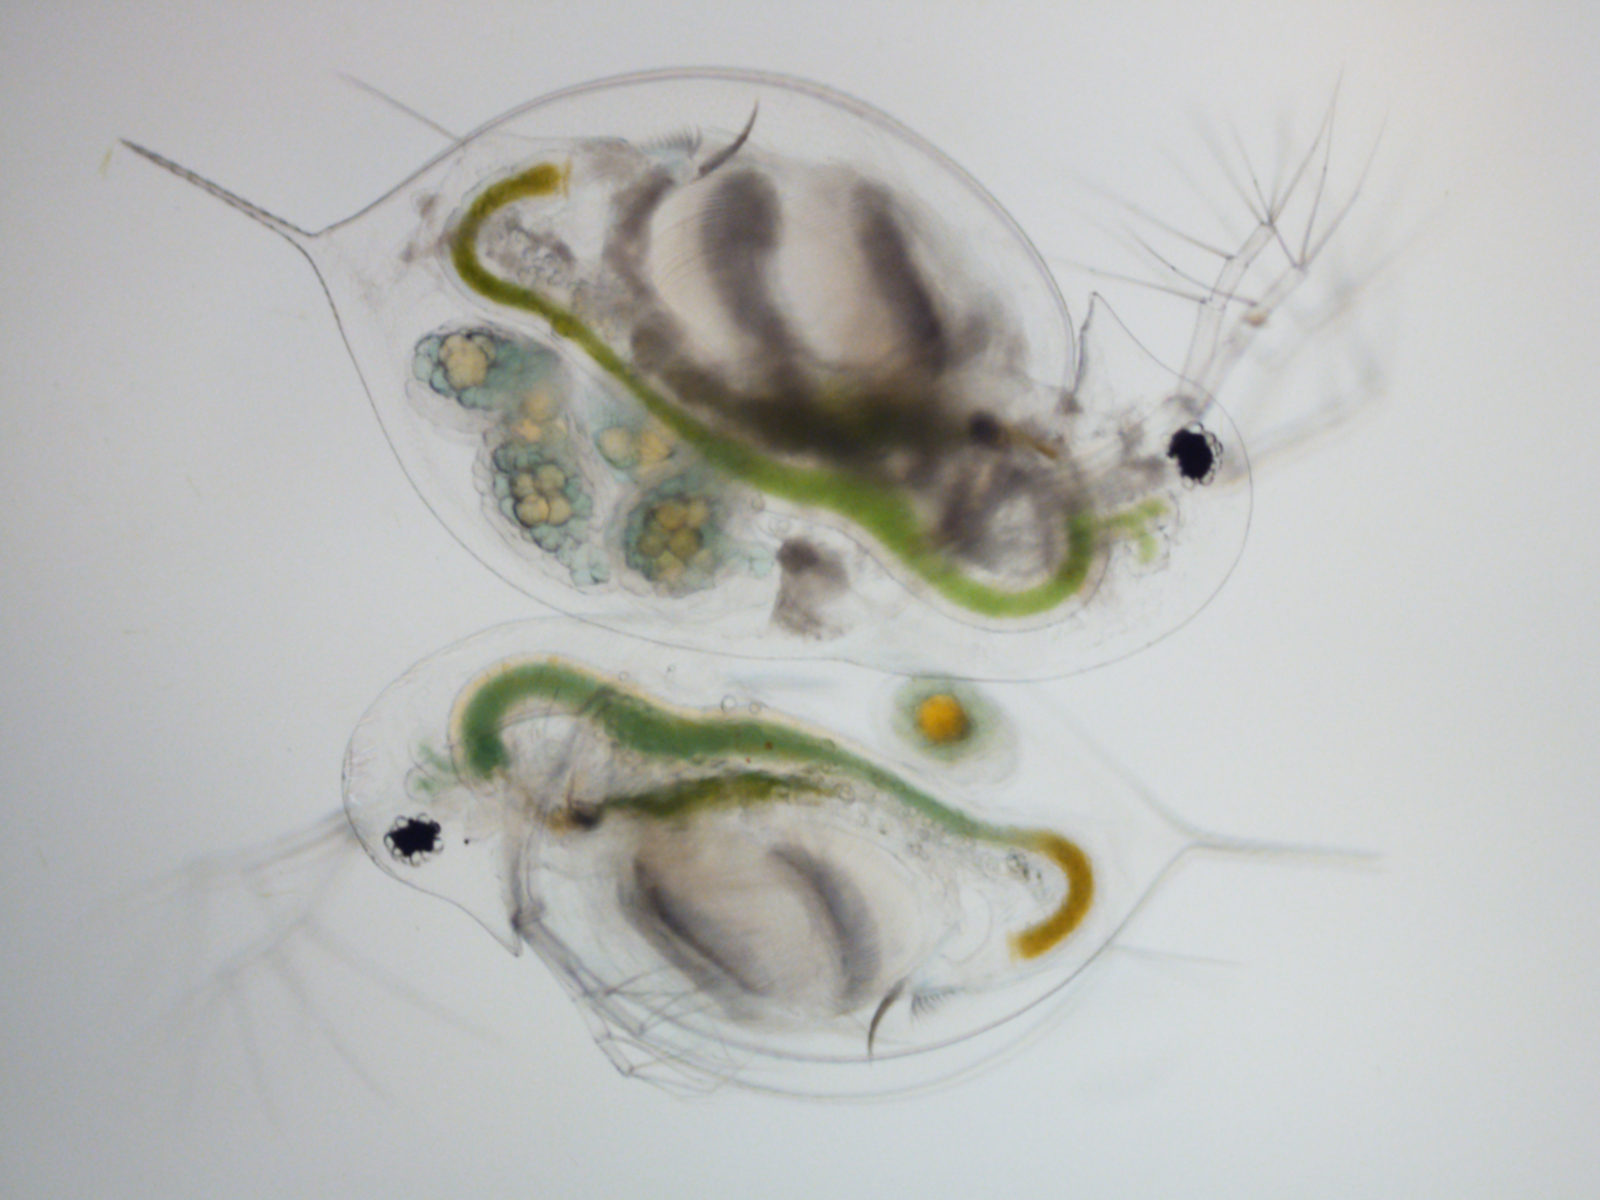 Microscope image of two Daphnia dentifera that fed on different diets and were exposed to a fungal pathogen. The top Daphnia fed on a nutritious green algae. She is larger and has several embryos in her brood chamber but is infected with a virulent fungal pathogen. The animal on the bottom fed on a toxic cyanobacterium. As a result, she is smaller and only has one developing embryo but is not infected with the pathogen (and, therefore, will live longer). Image credit: Meghan Duffy.